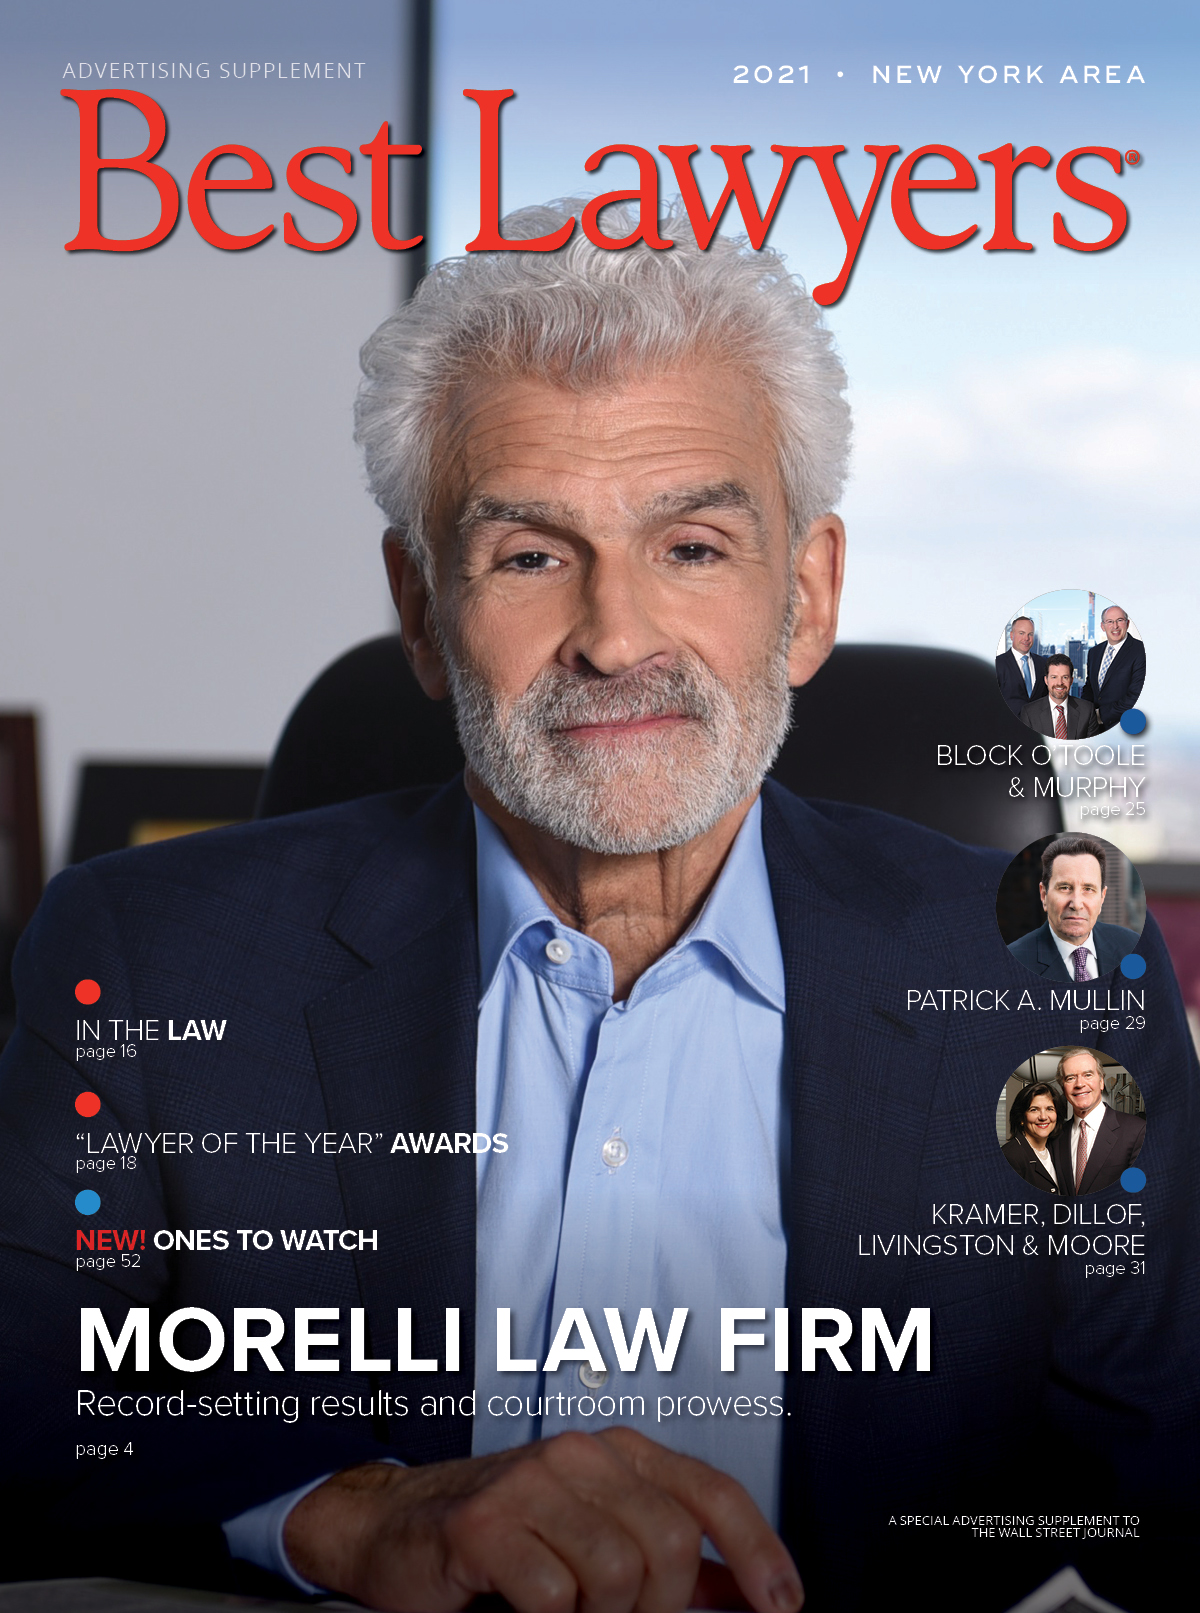 Cover for our New York Area publication